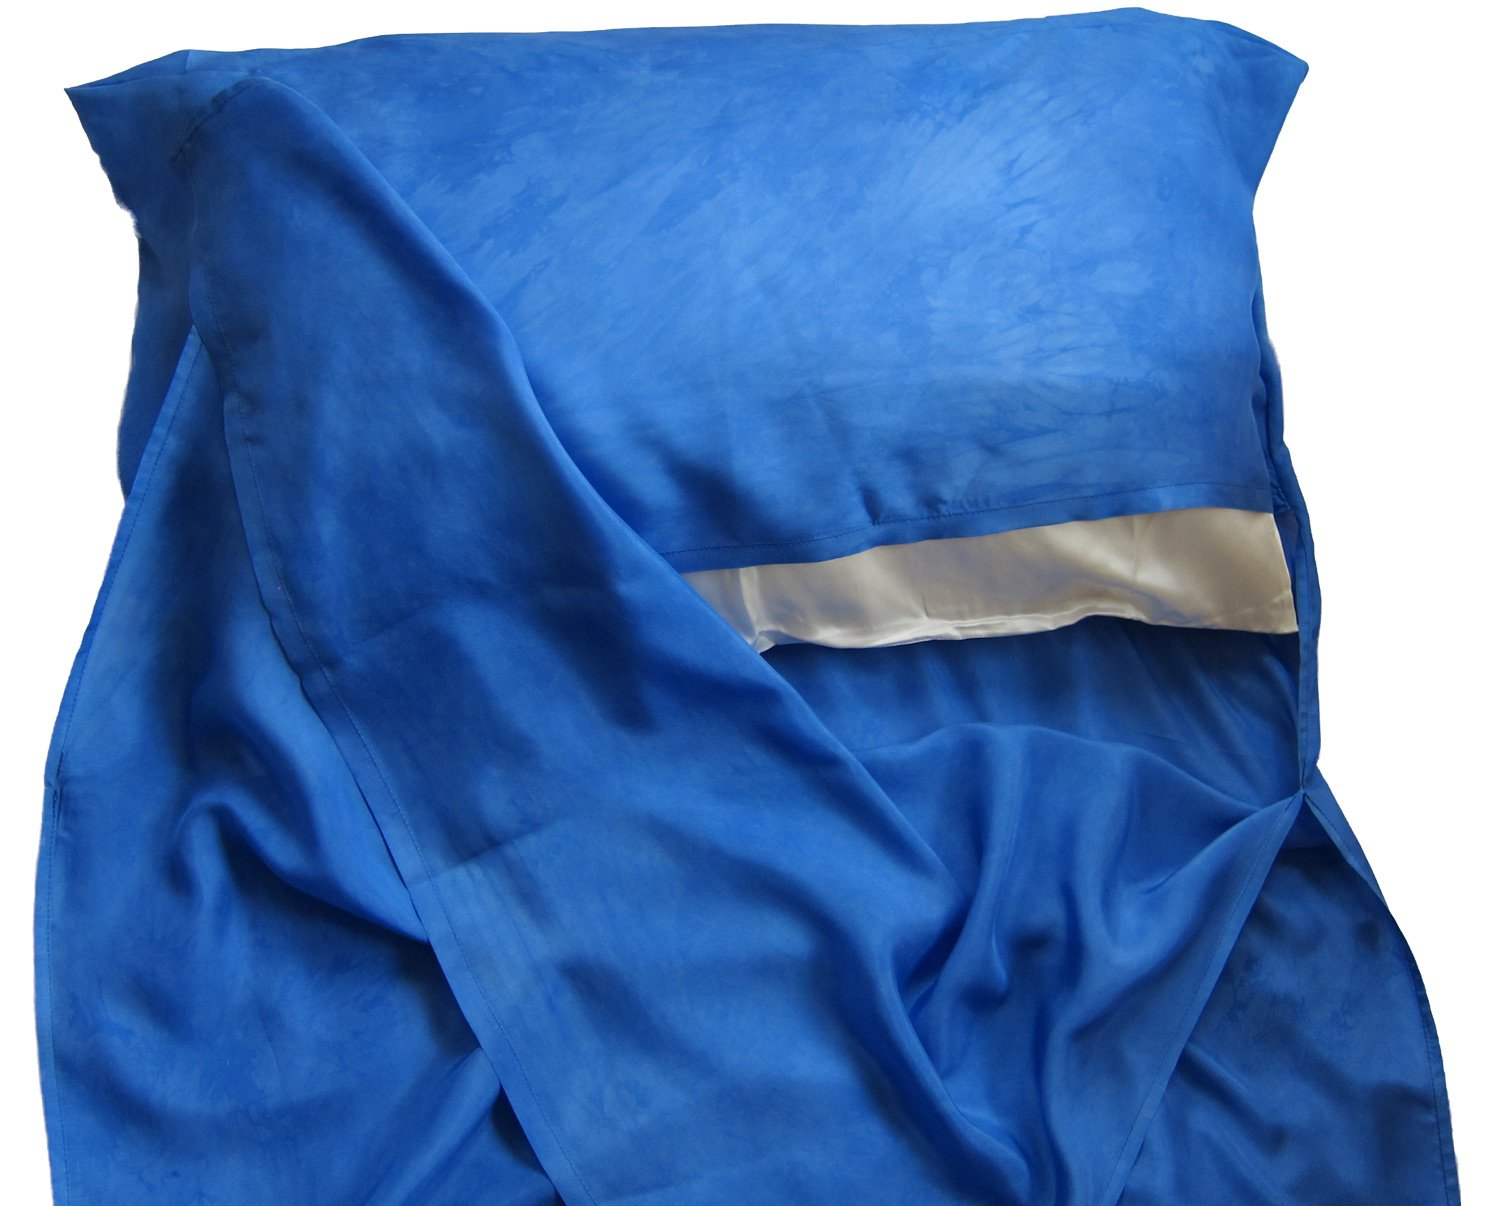 JagBag Deluxe Extra Wide Pure Silk Sleeping Bag Liner